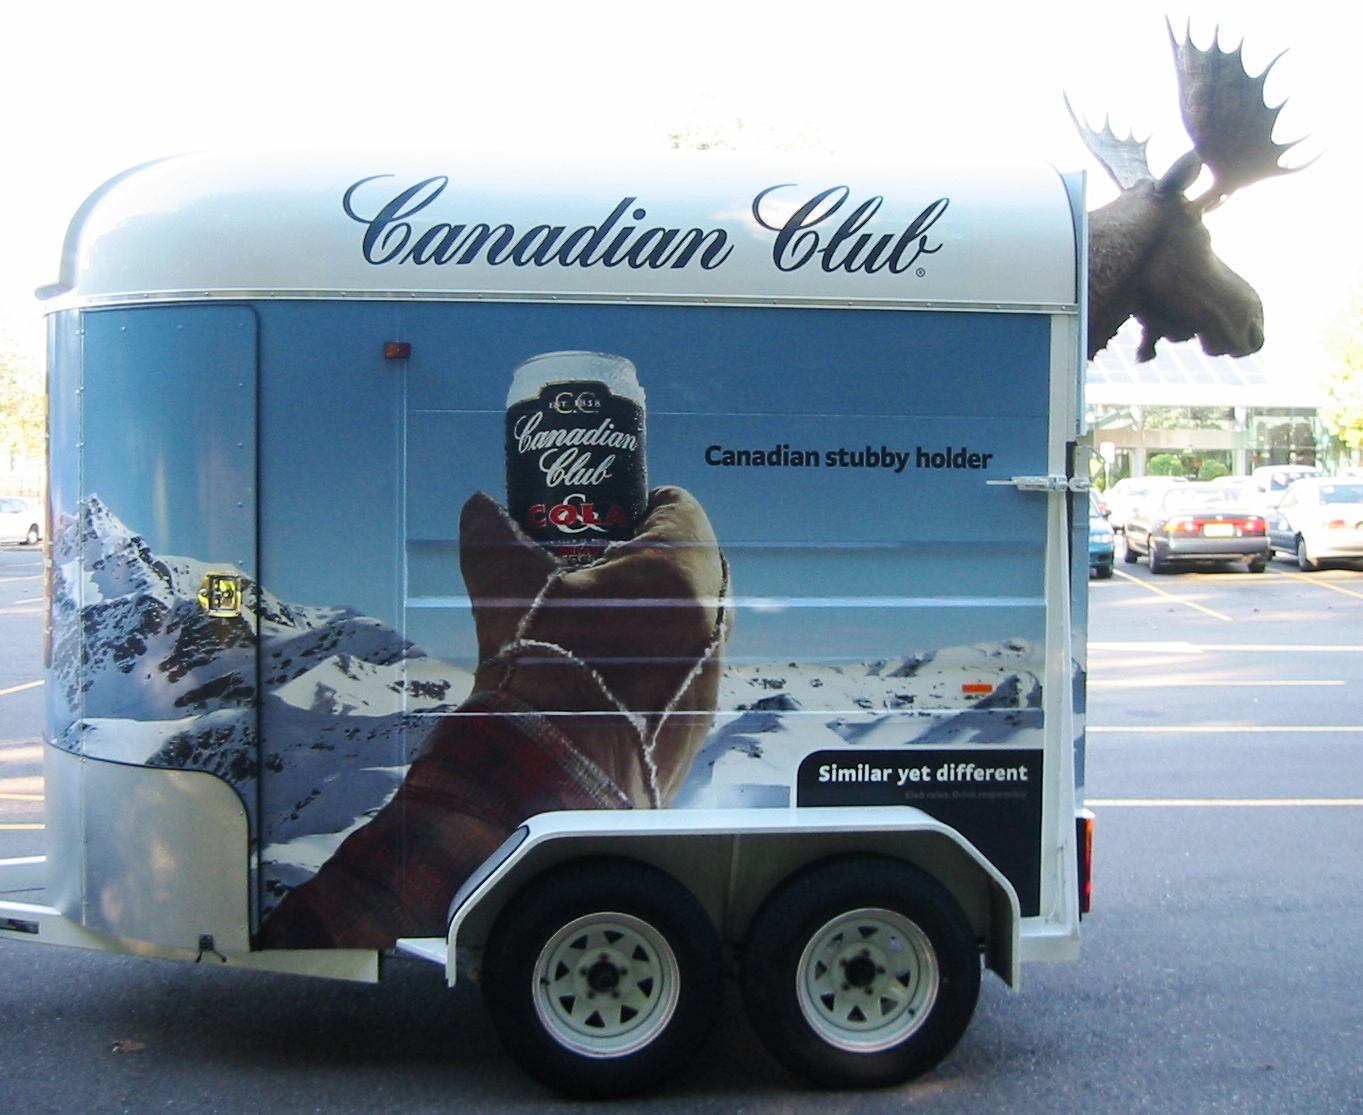 Vehicle-based events. Custom build. Fleet graphics. Canadian Club (CC) moose trailer - Similar yet different. Moose's head mounted on the rear.